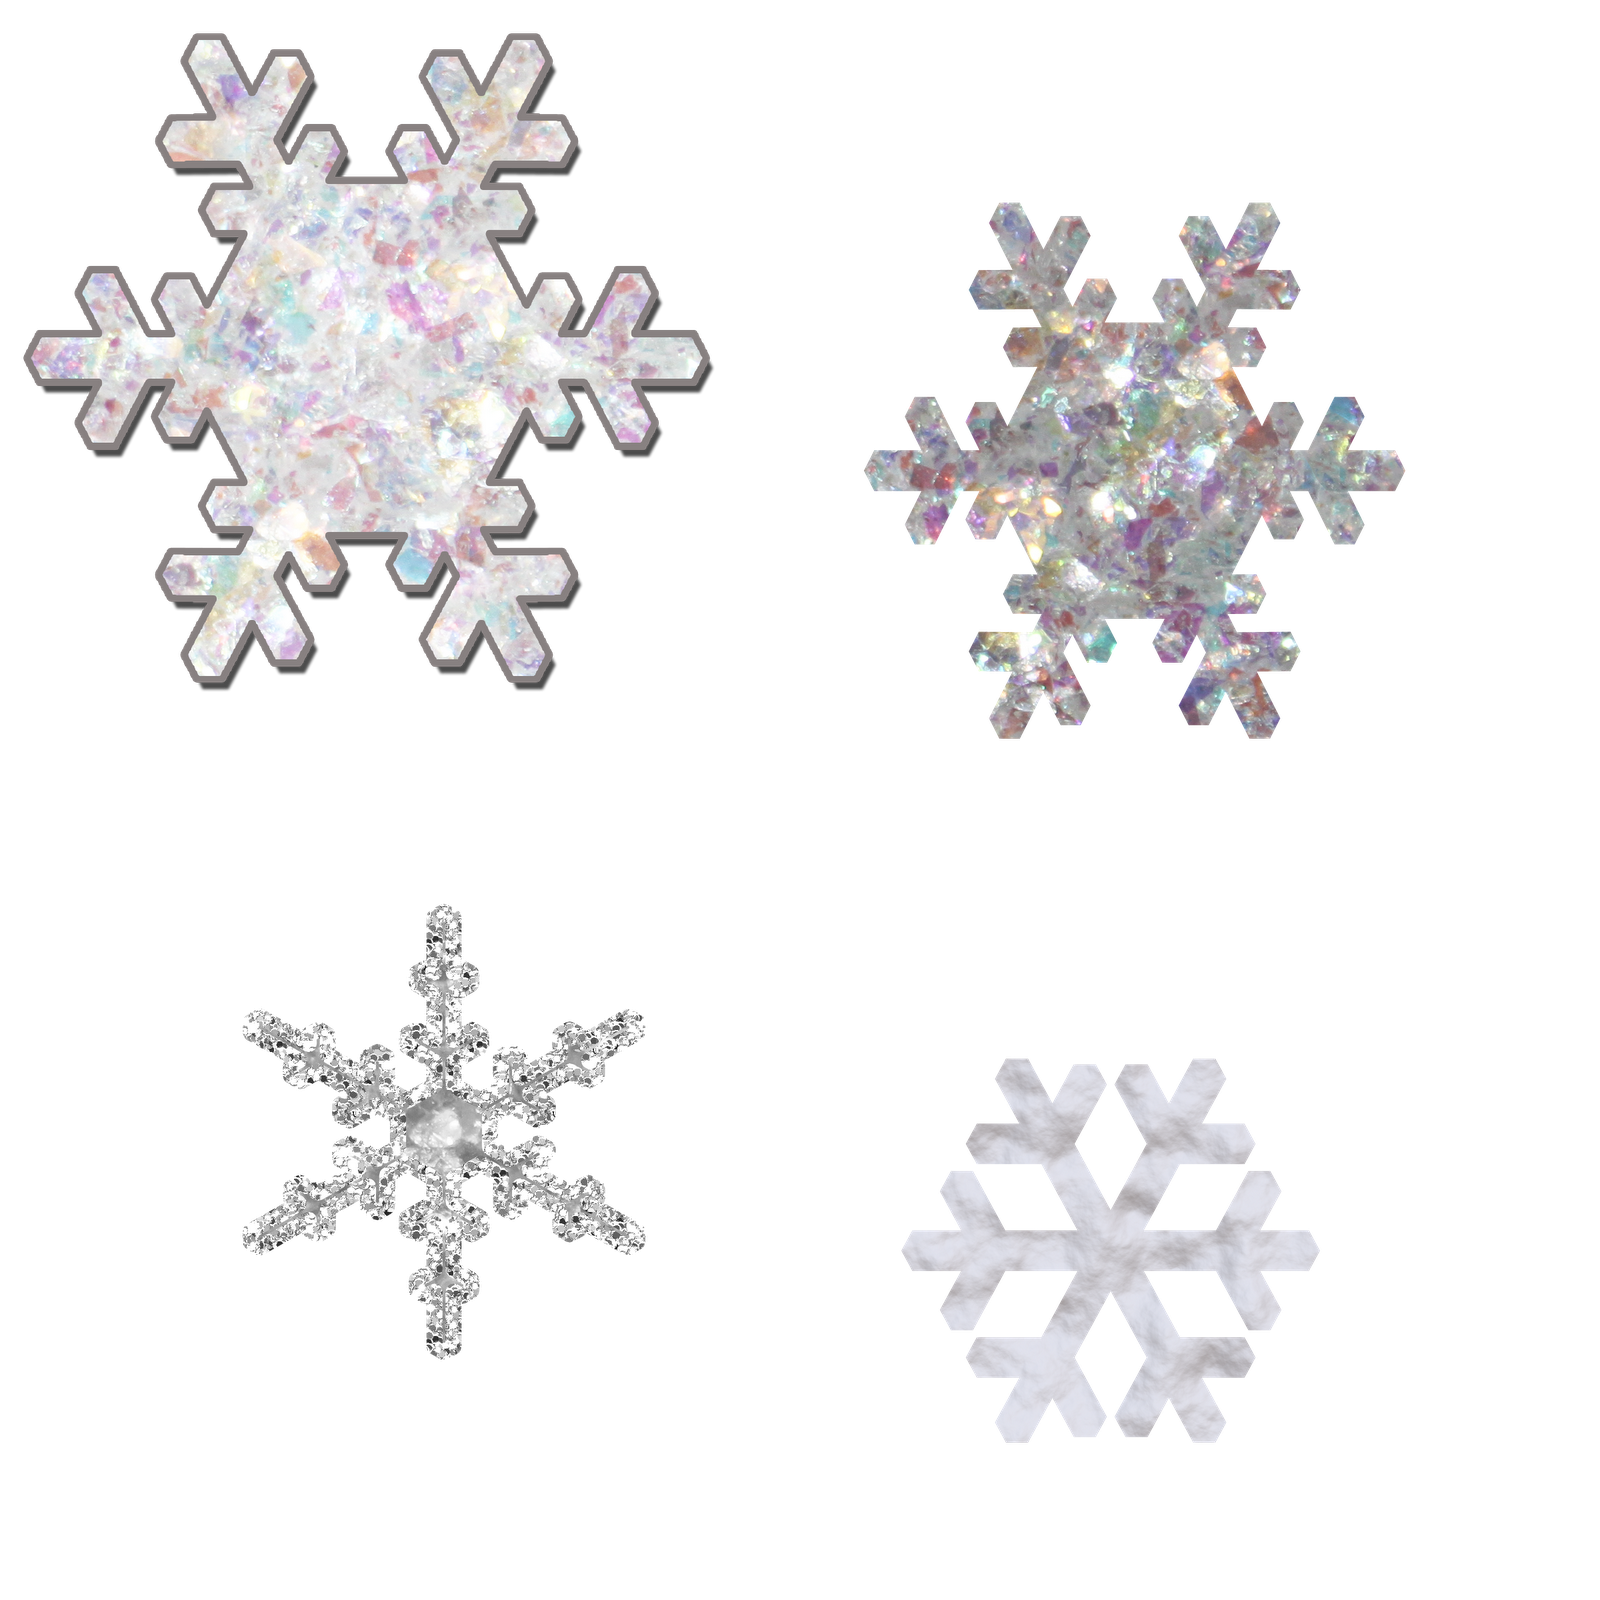 Snowflakes Transparent PNG Pictures - Free Icons and PNG ...